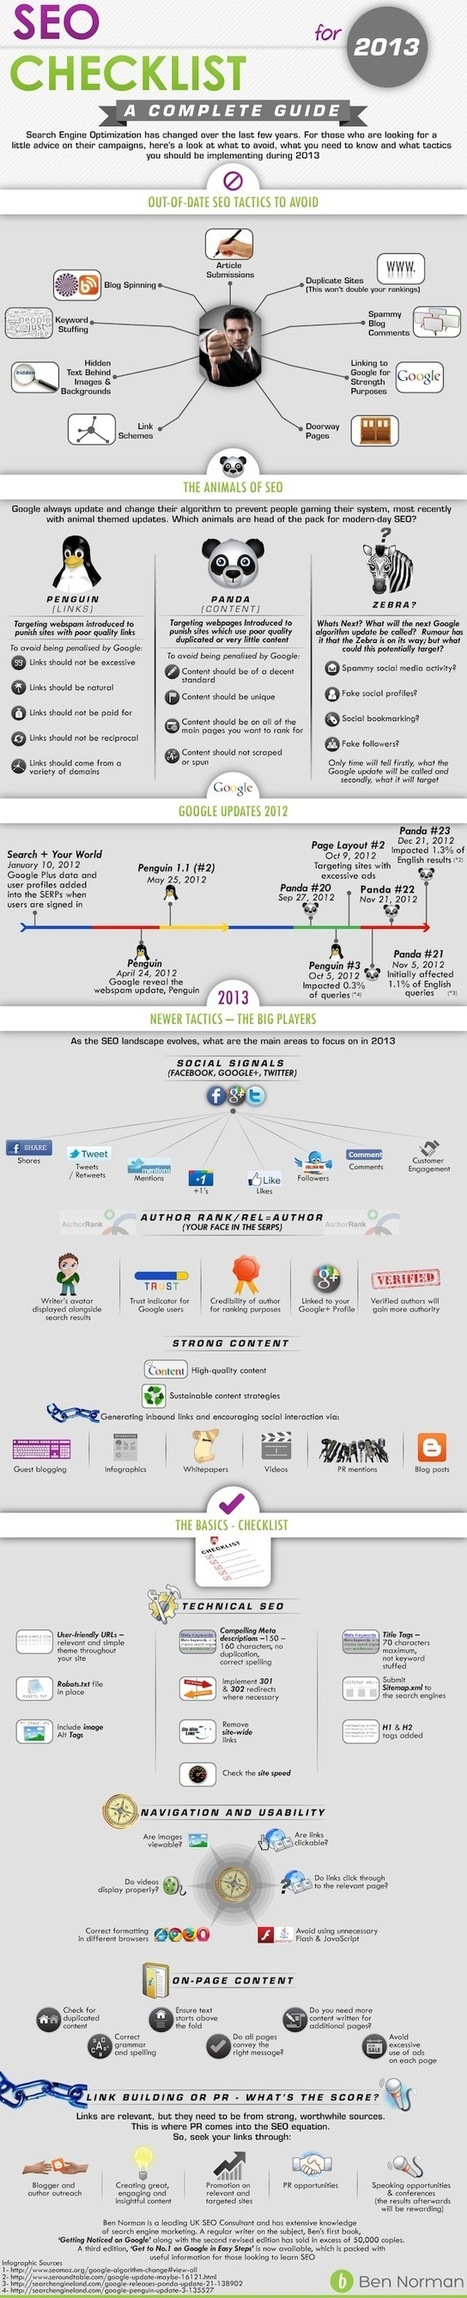 Infographie : le référencement en 2013, à faire et à éviter | Winning Digital Strategies | Scoop.it